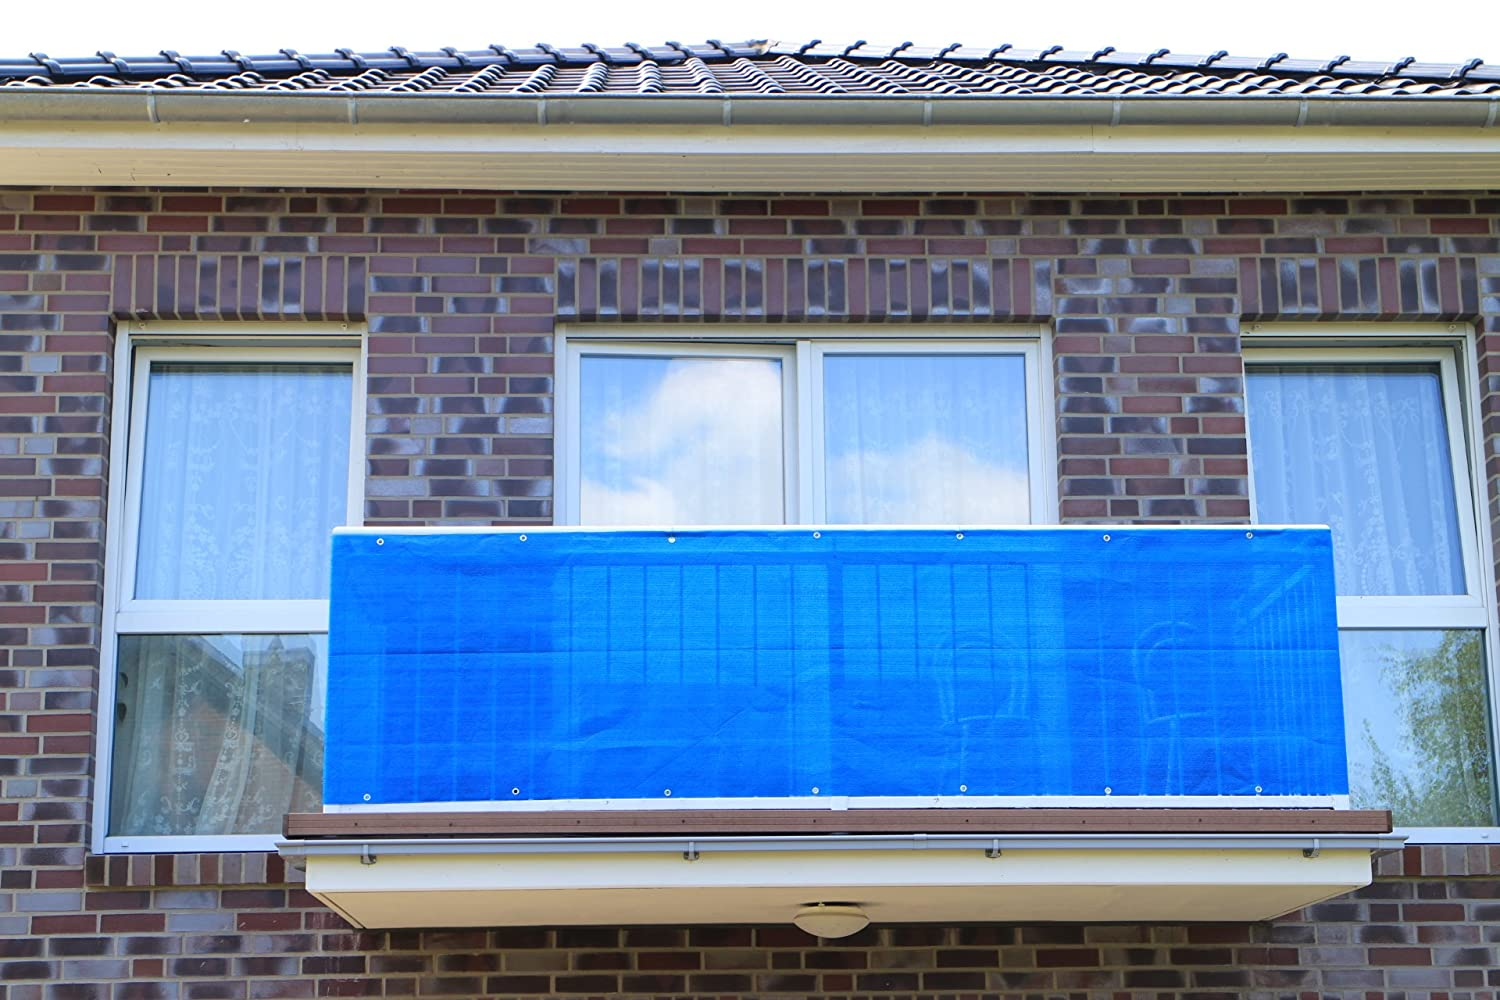 Blue smart decorative balcony privacy screen, wind protection, privacy and UV protection for balcony, garden, camping and leisure., Plastic, blue, 200x90cm Smart Deko